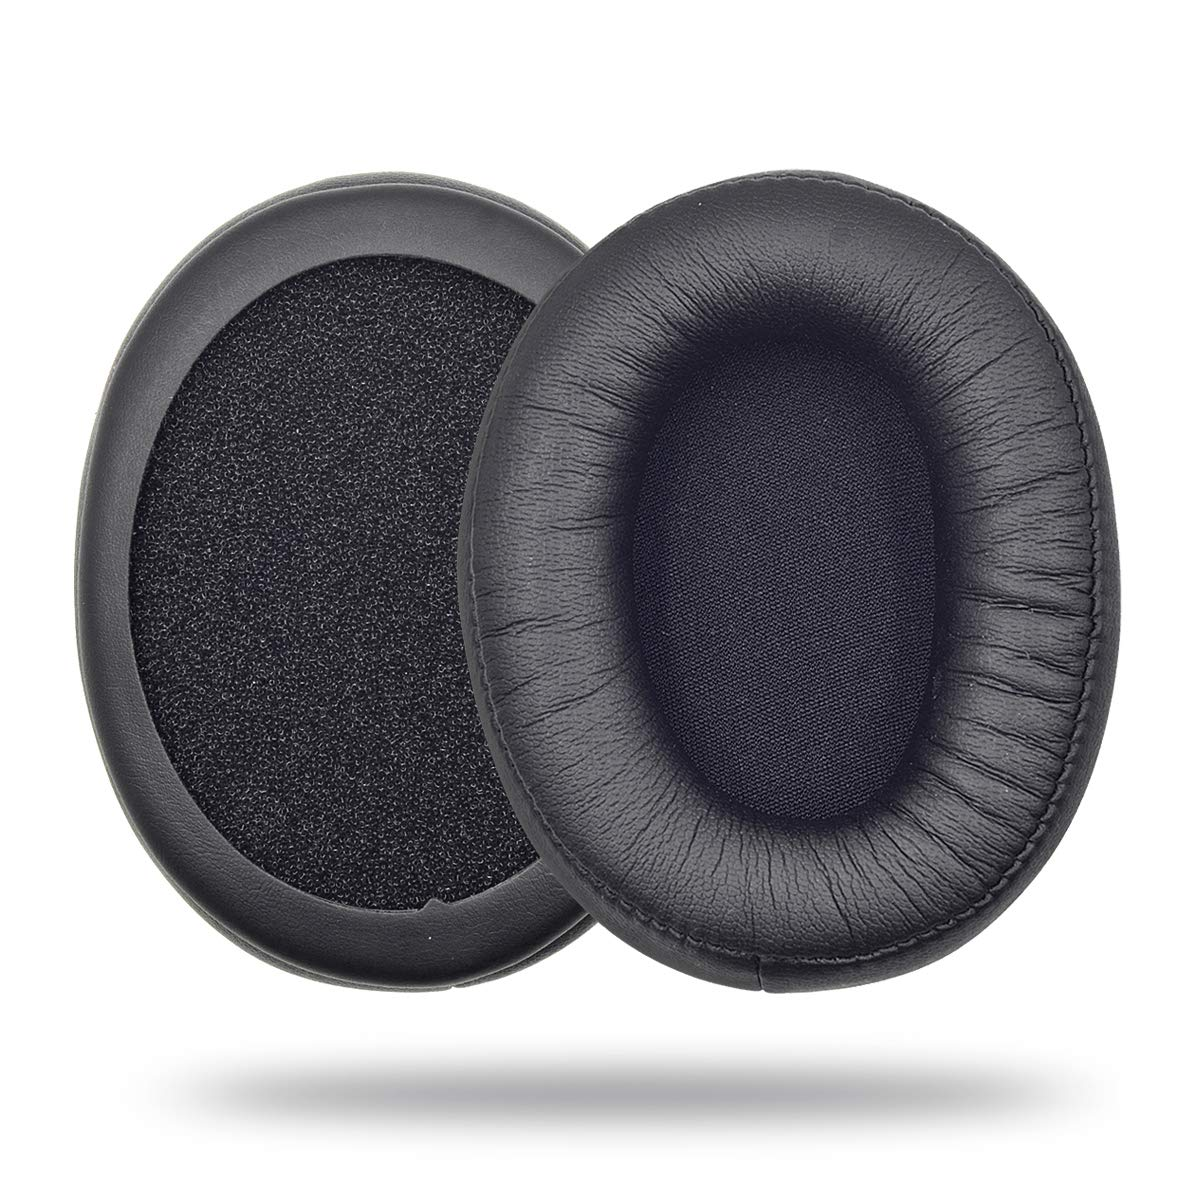 Replacement Ear Pads Foam Cushion Pillow Parts Cover for Kingston HyperX Cloud Alpha Pro Gaming Headset